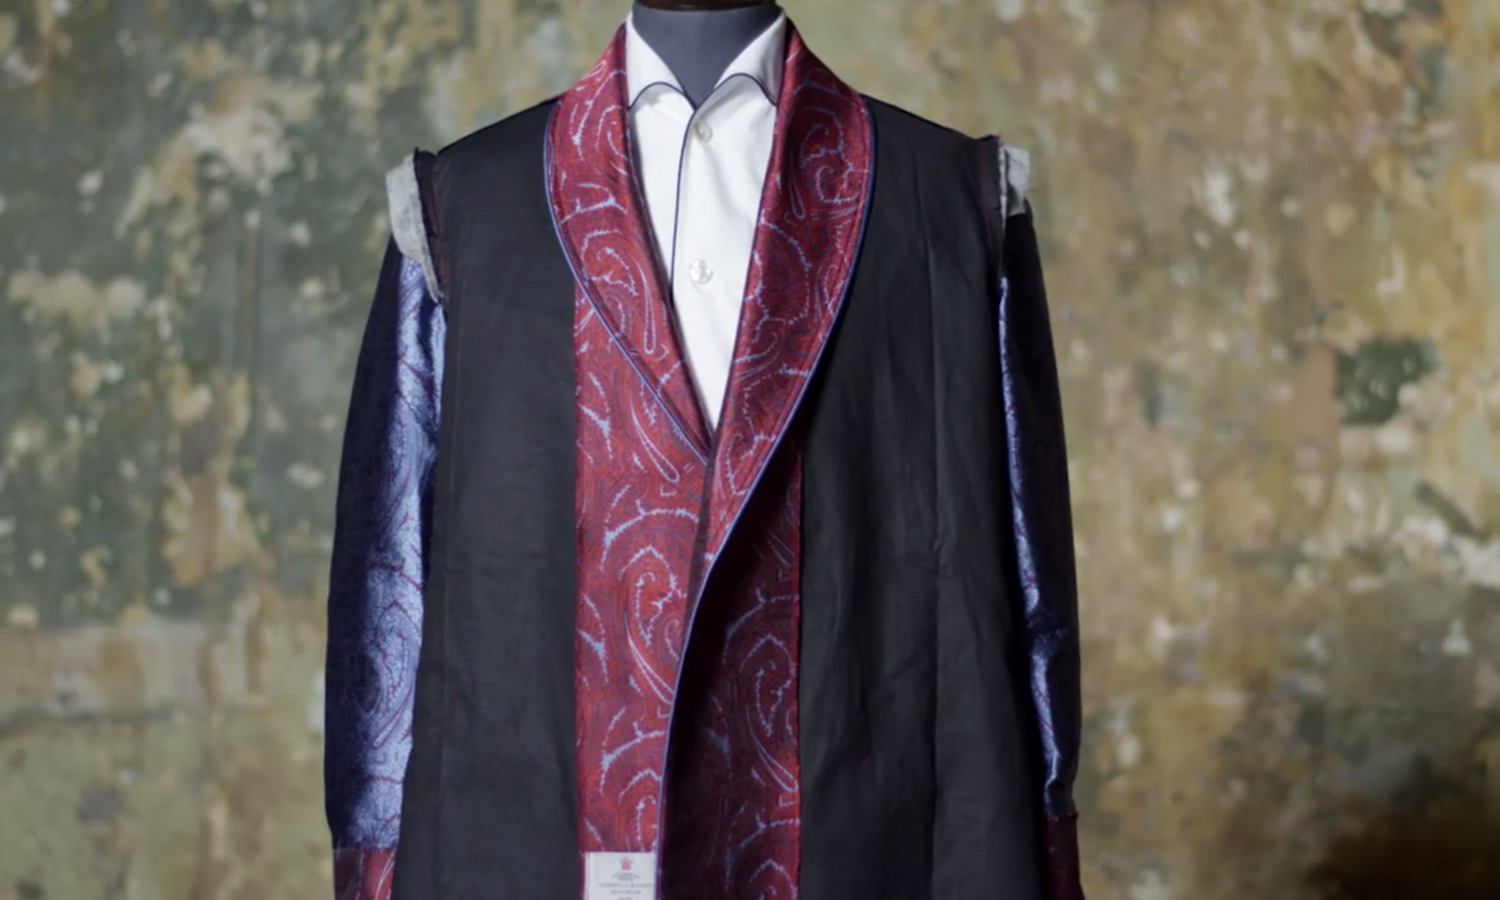 Turnbull & Asser Dressing Gown Film • Selectism